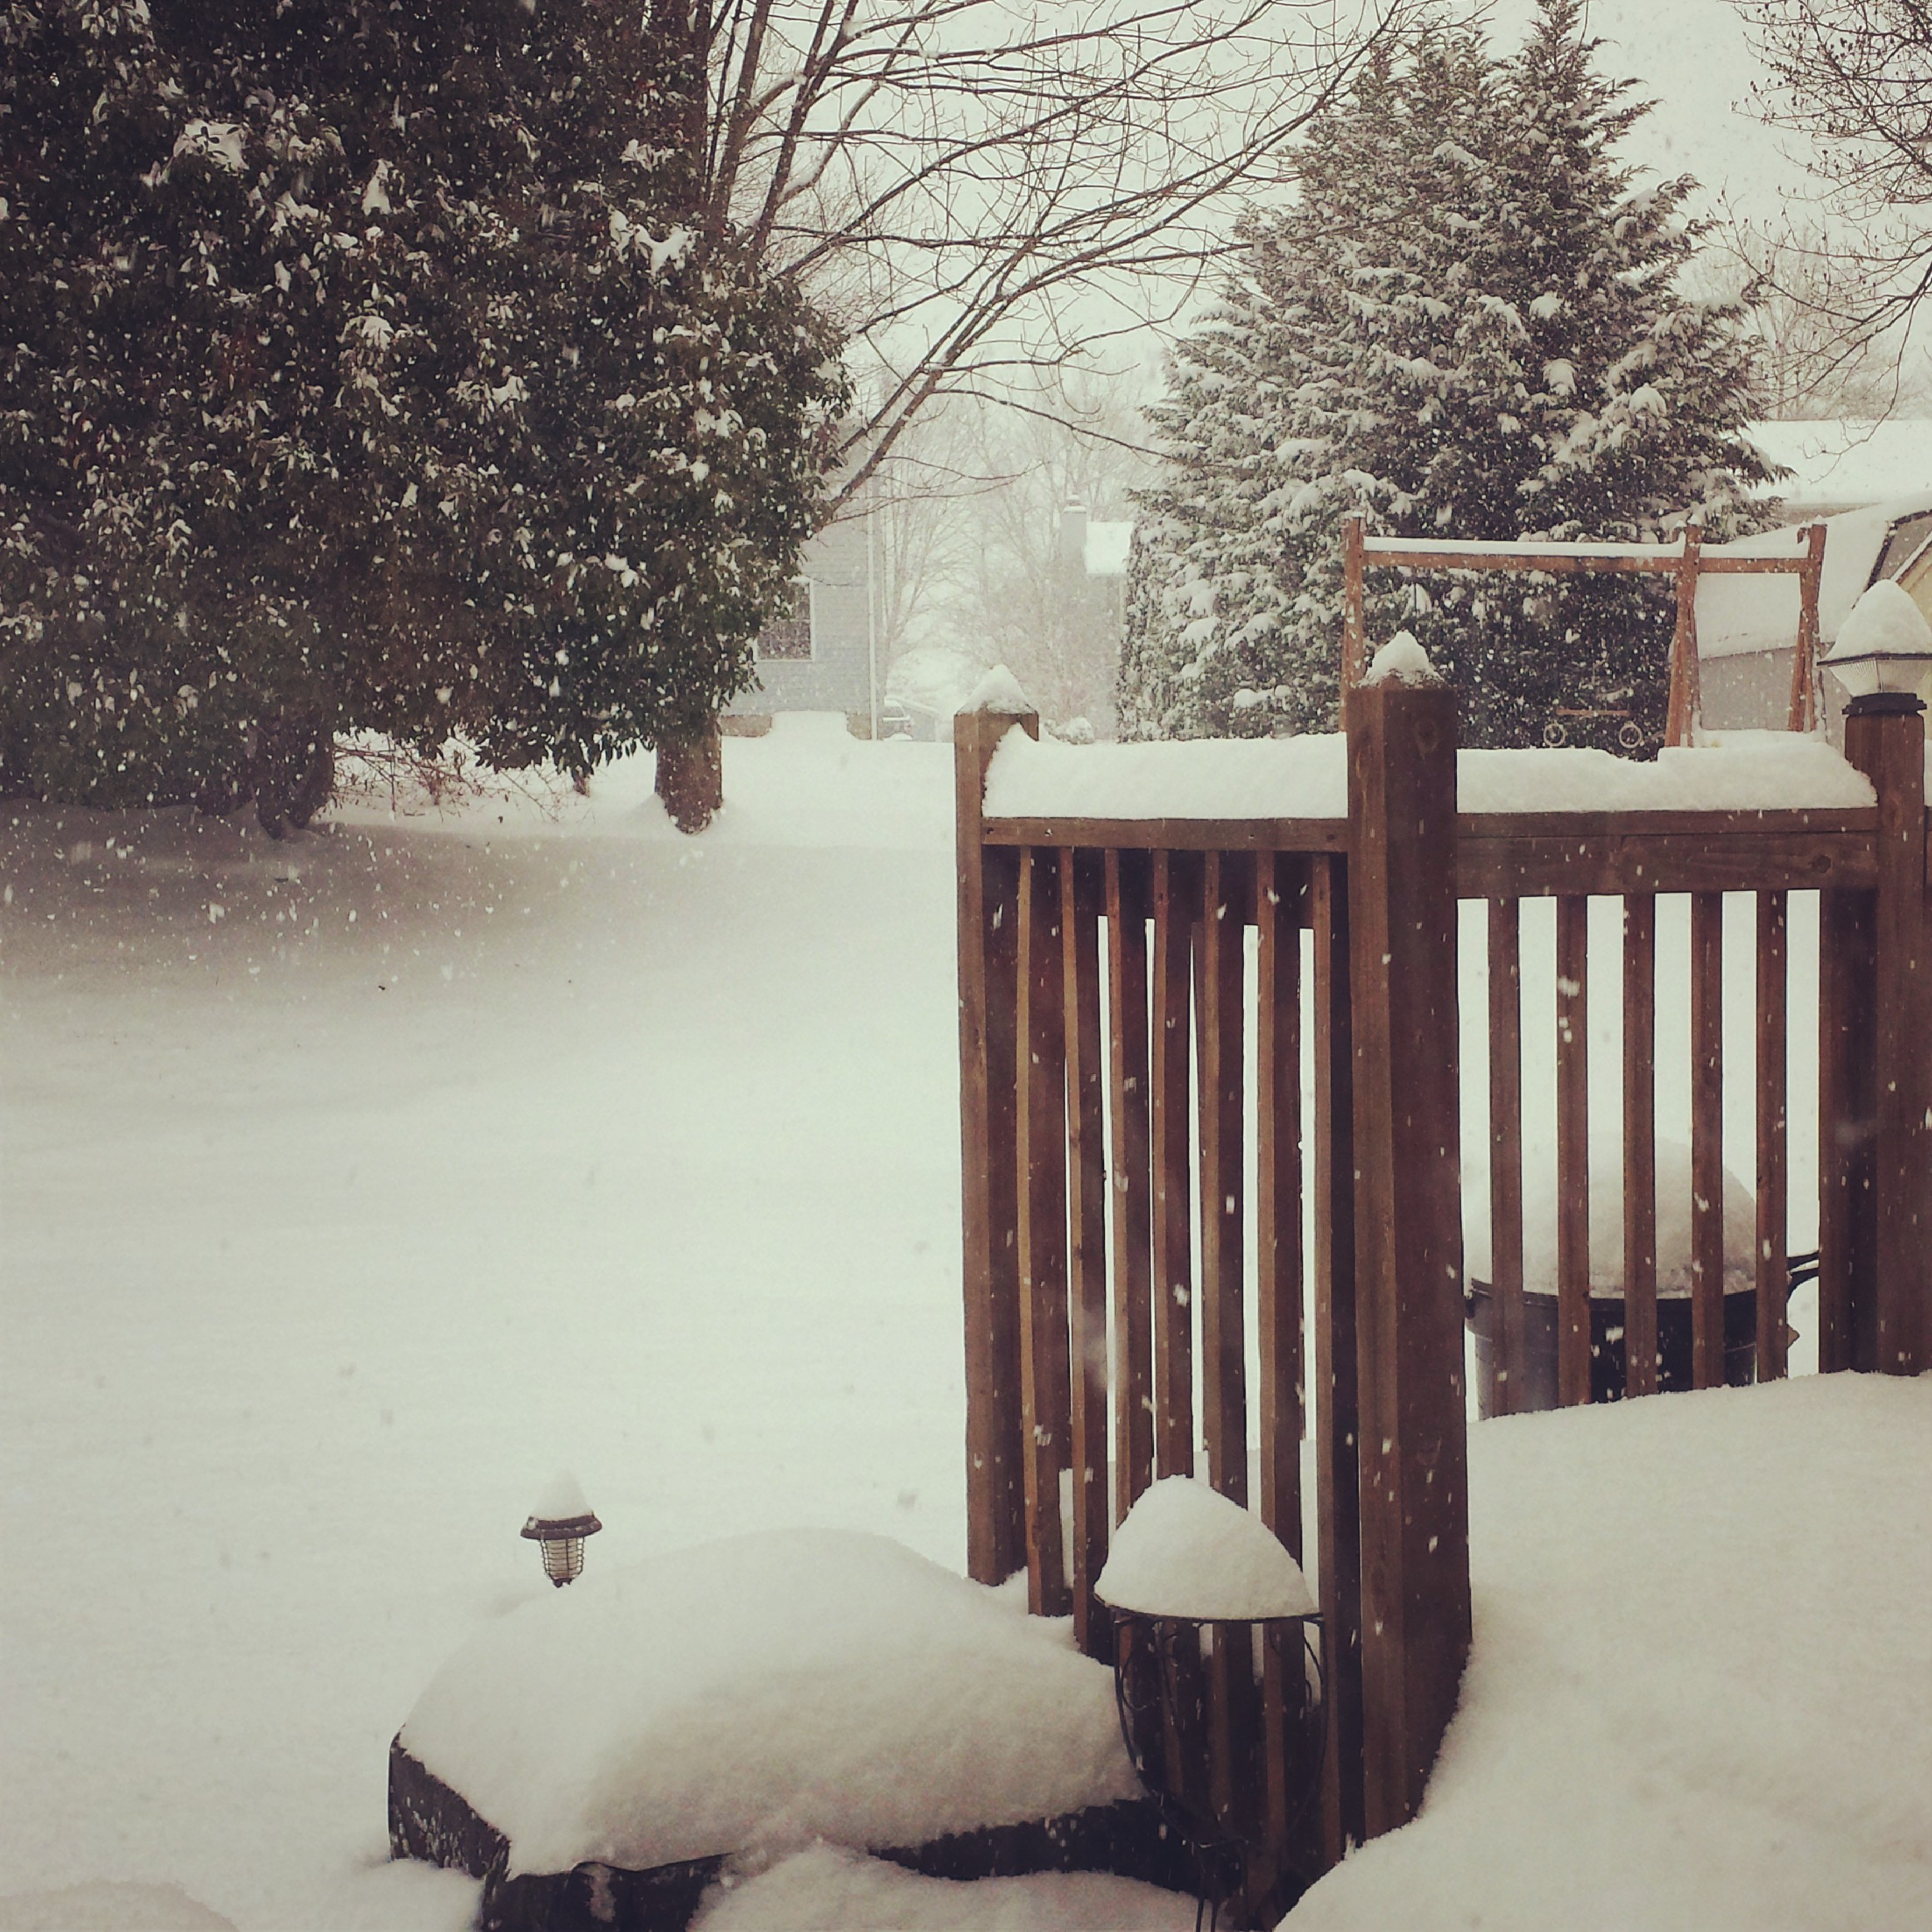 Oh the winter of 2013-2014. The winter that brought us the infamous 'Polar Vortex'. And polar it was! We started getting snow back in Oct. 2013 and we still had some by late March.